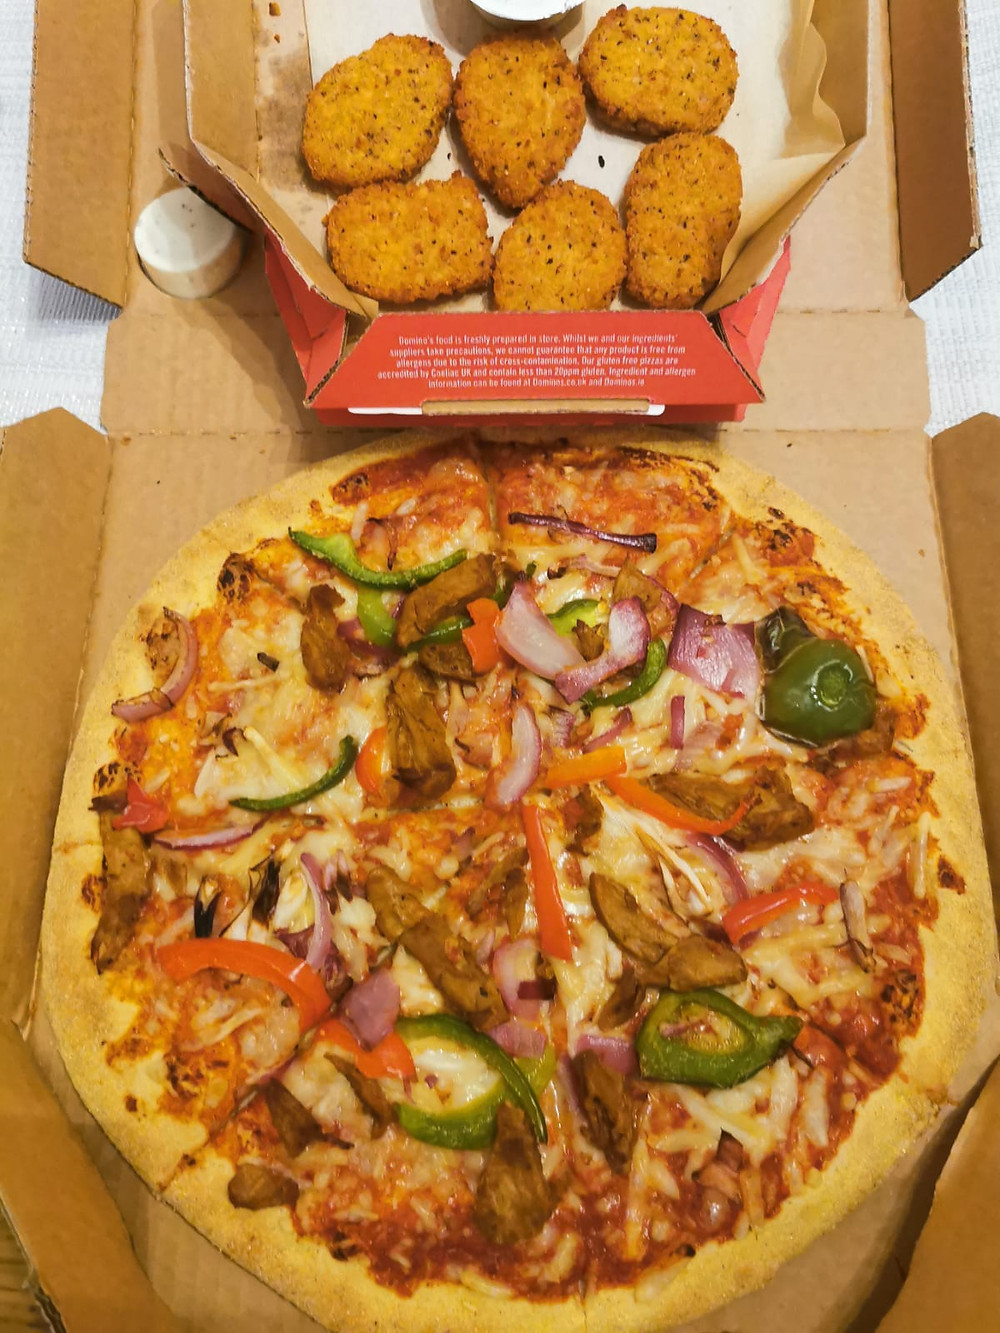 Domino's Chick-Ain't Pizza with Domino's vegan nuggets